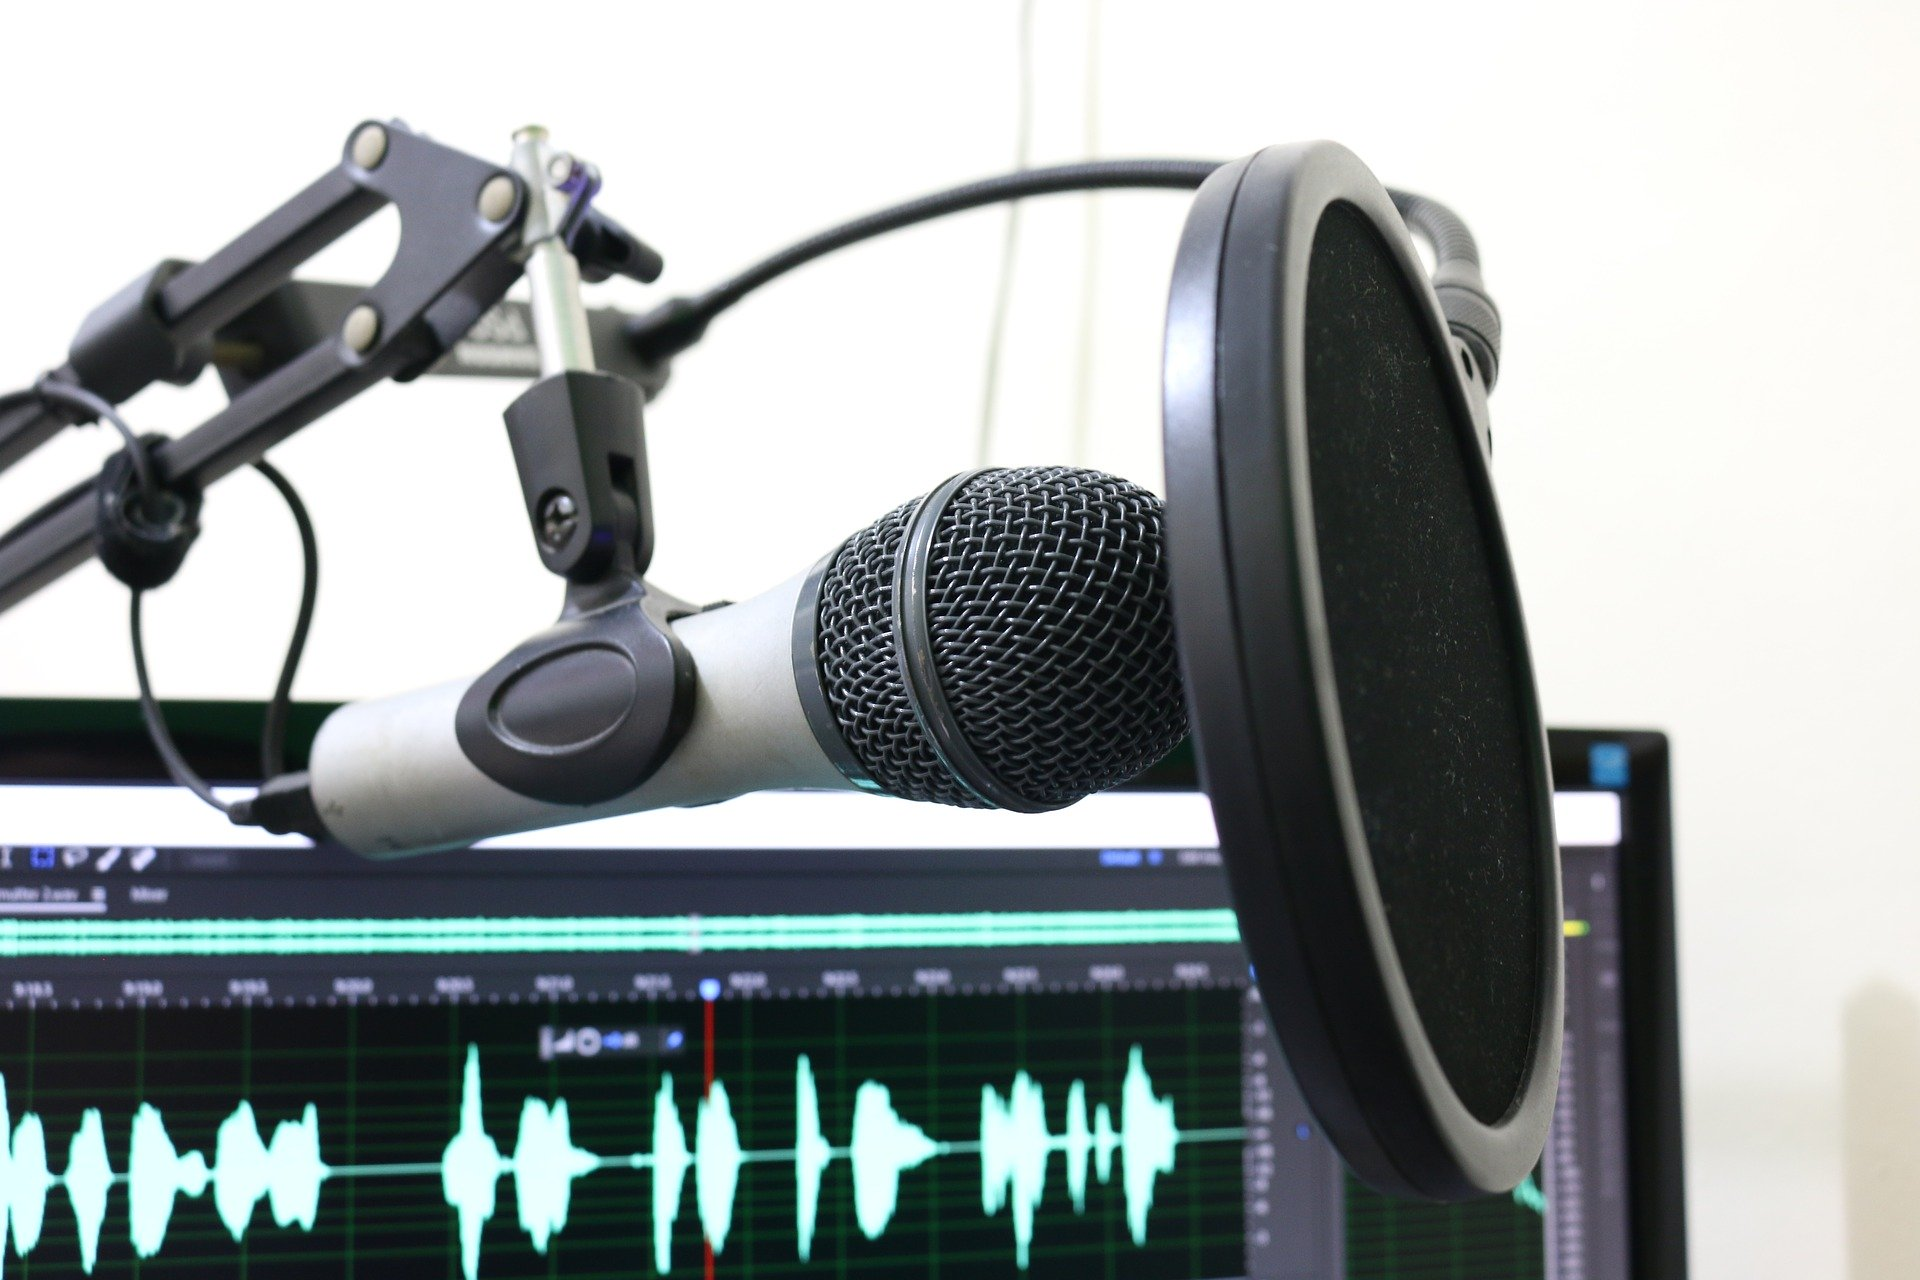 LegalTech StartUp Podcast: An Interview with Clarilis' CEO, James Quinn